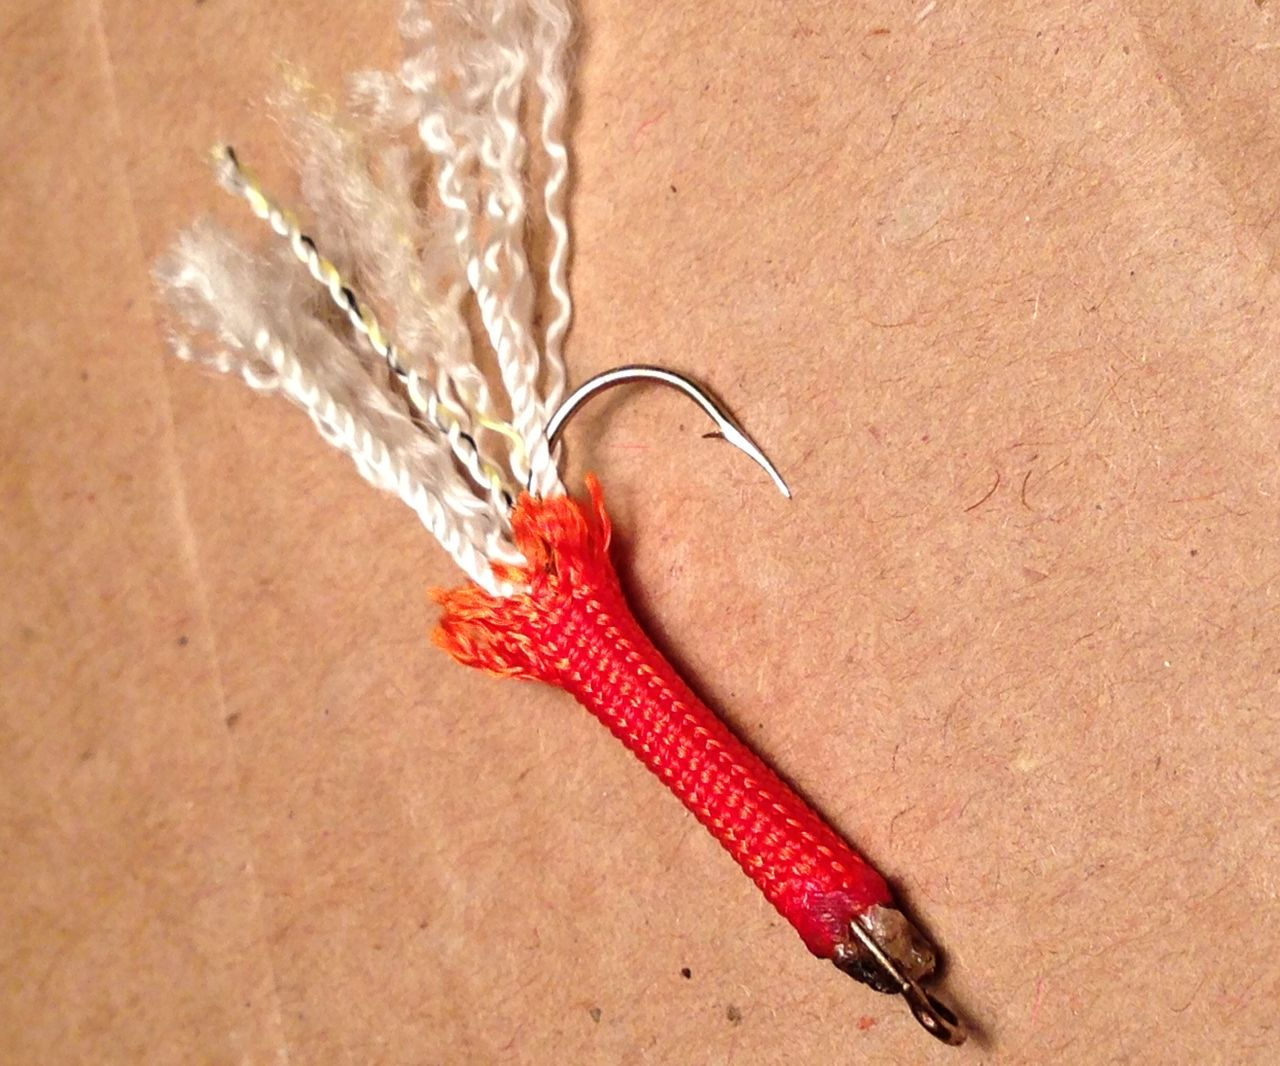 How to Make a Fishing Lure From Paracord